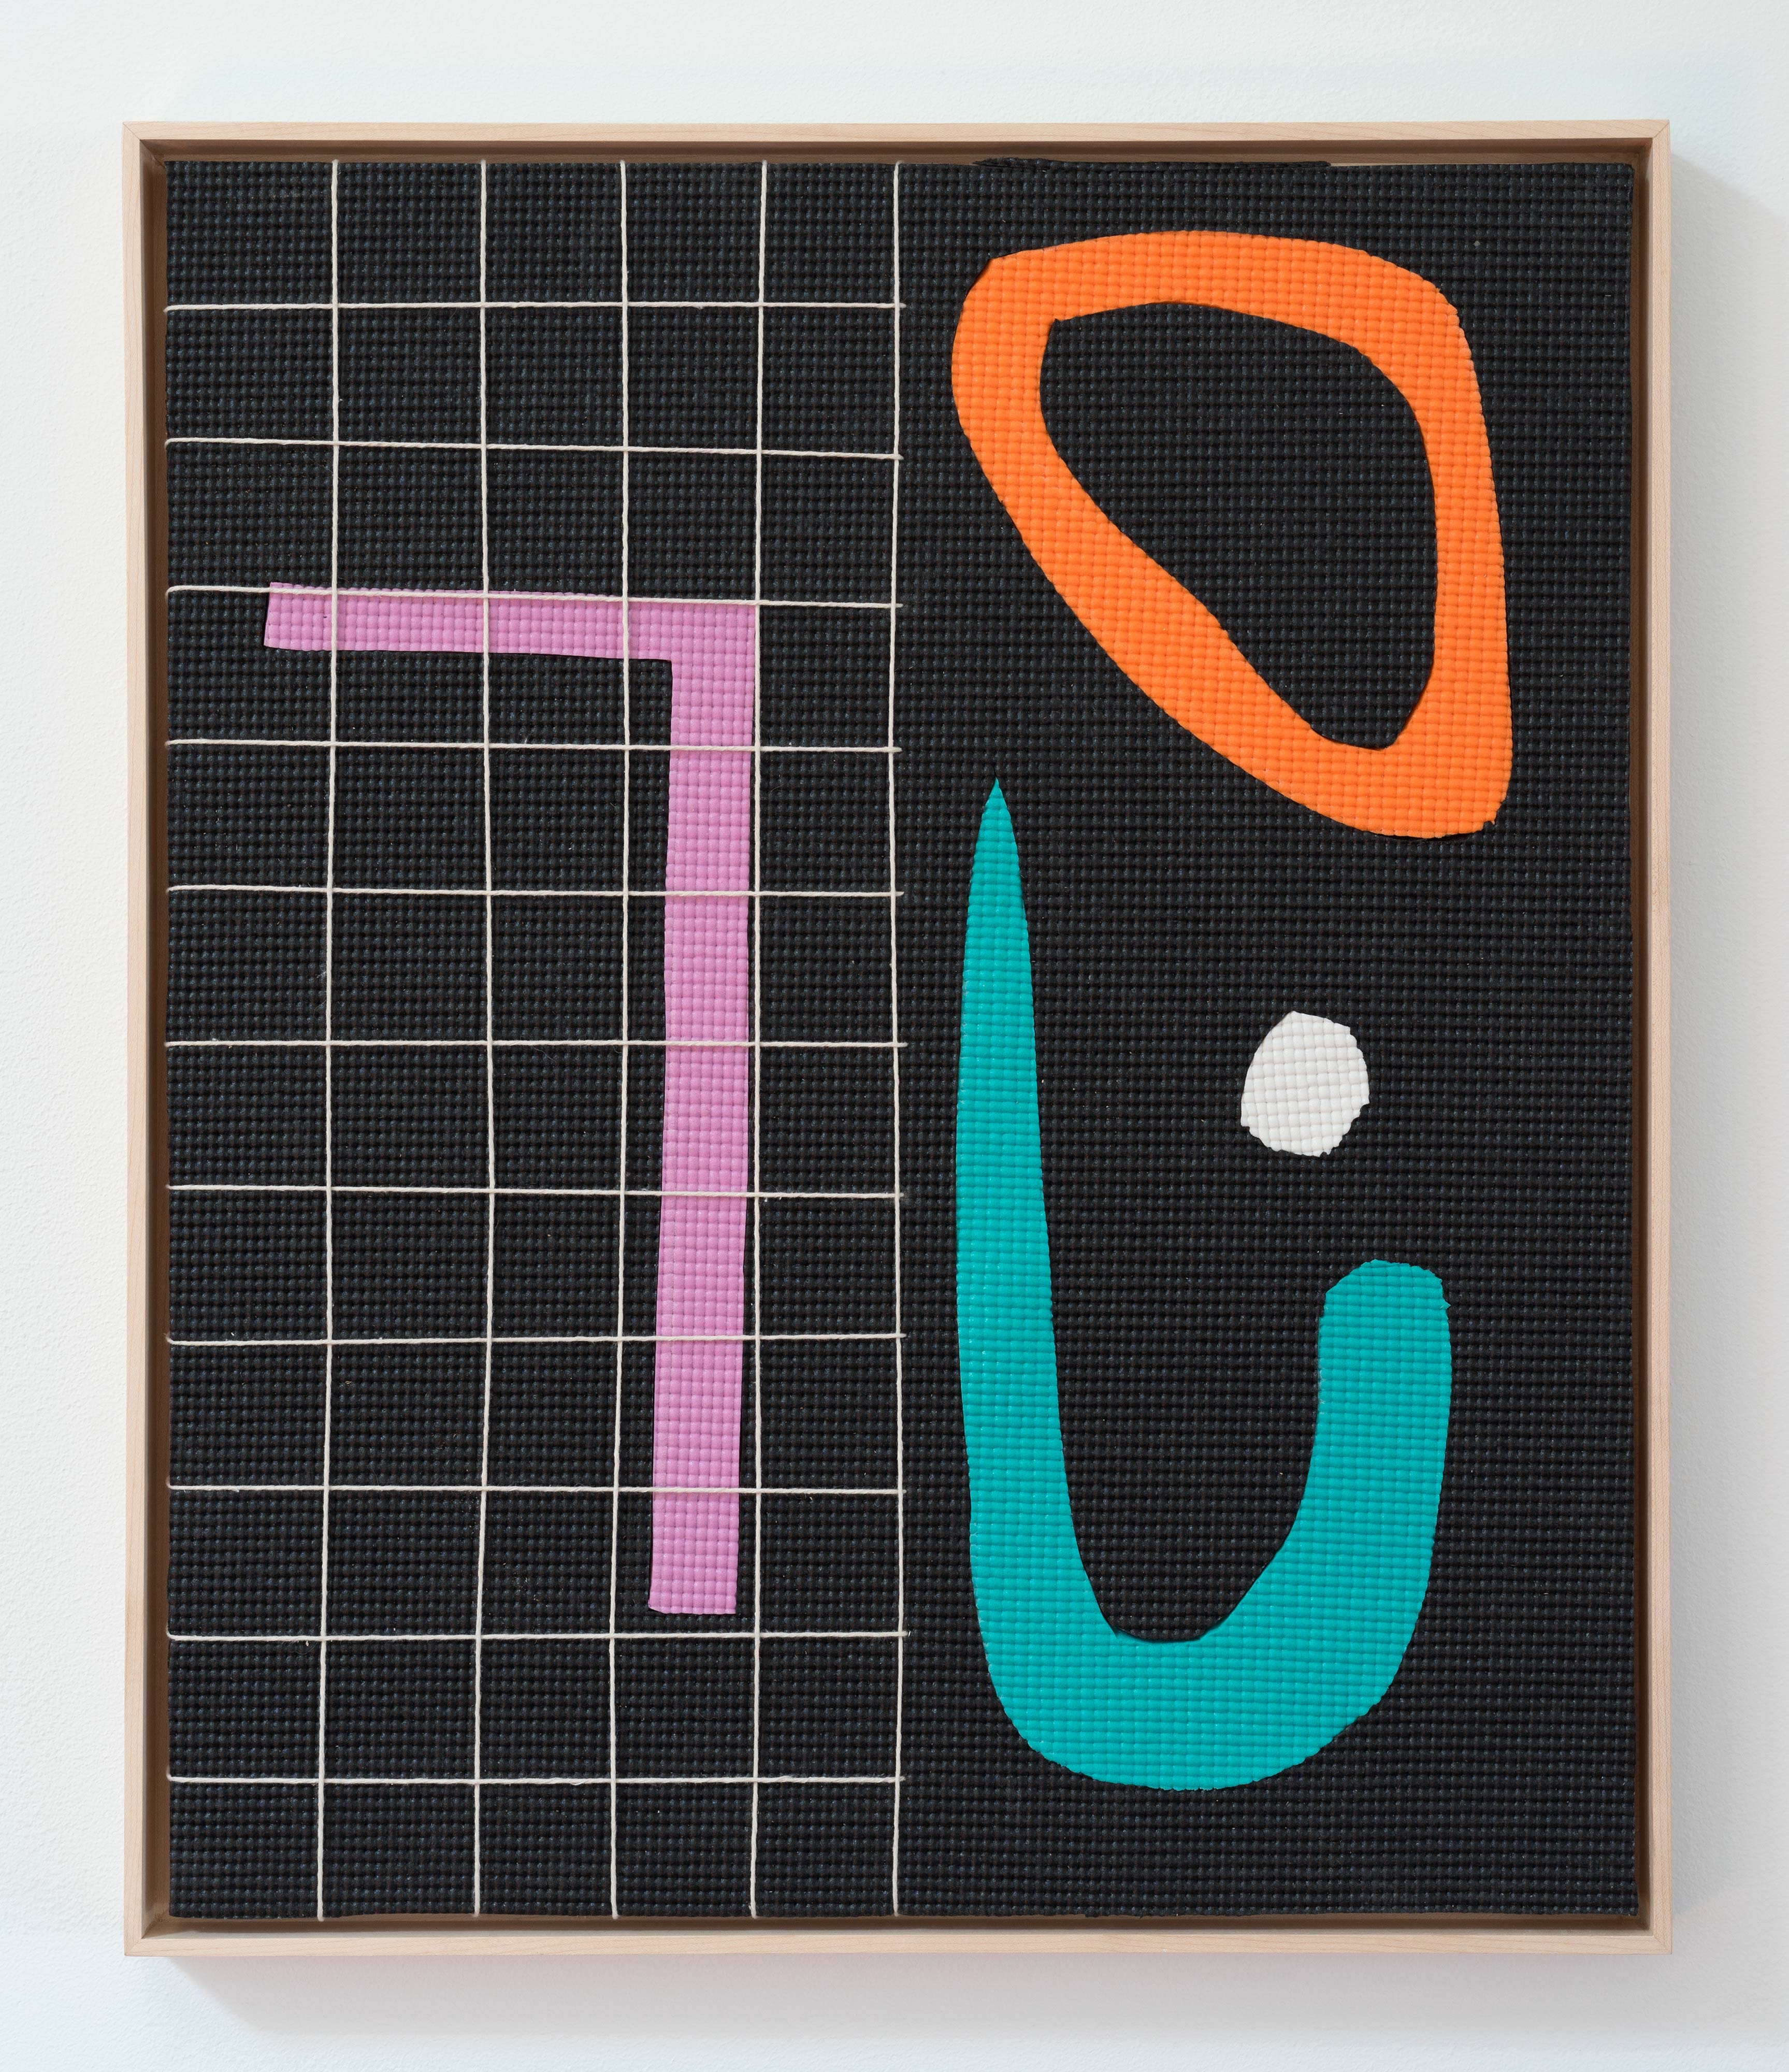 Alex Ebstein<br>Bright Lights<br>2016<br>Twine and PVC Yoga Mats<br>24 x 20 in (61 x 51 cm)